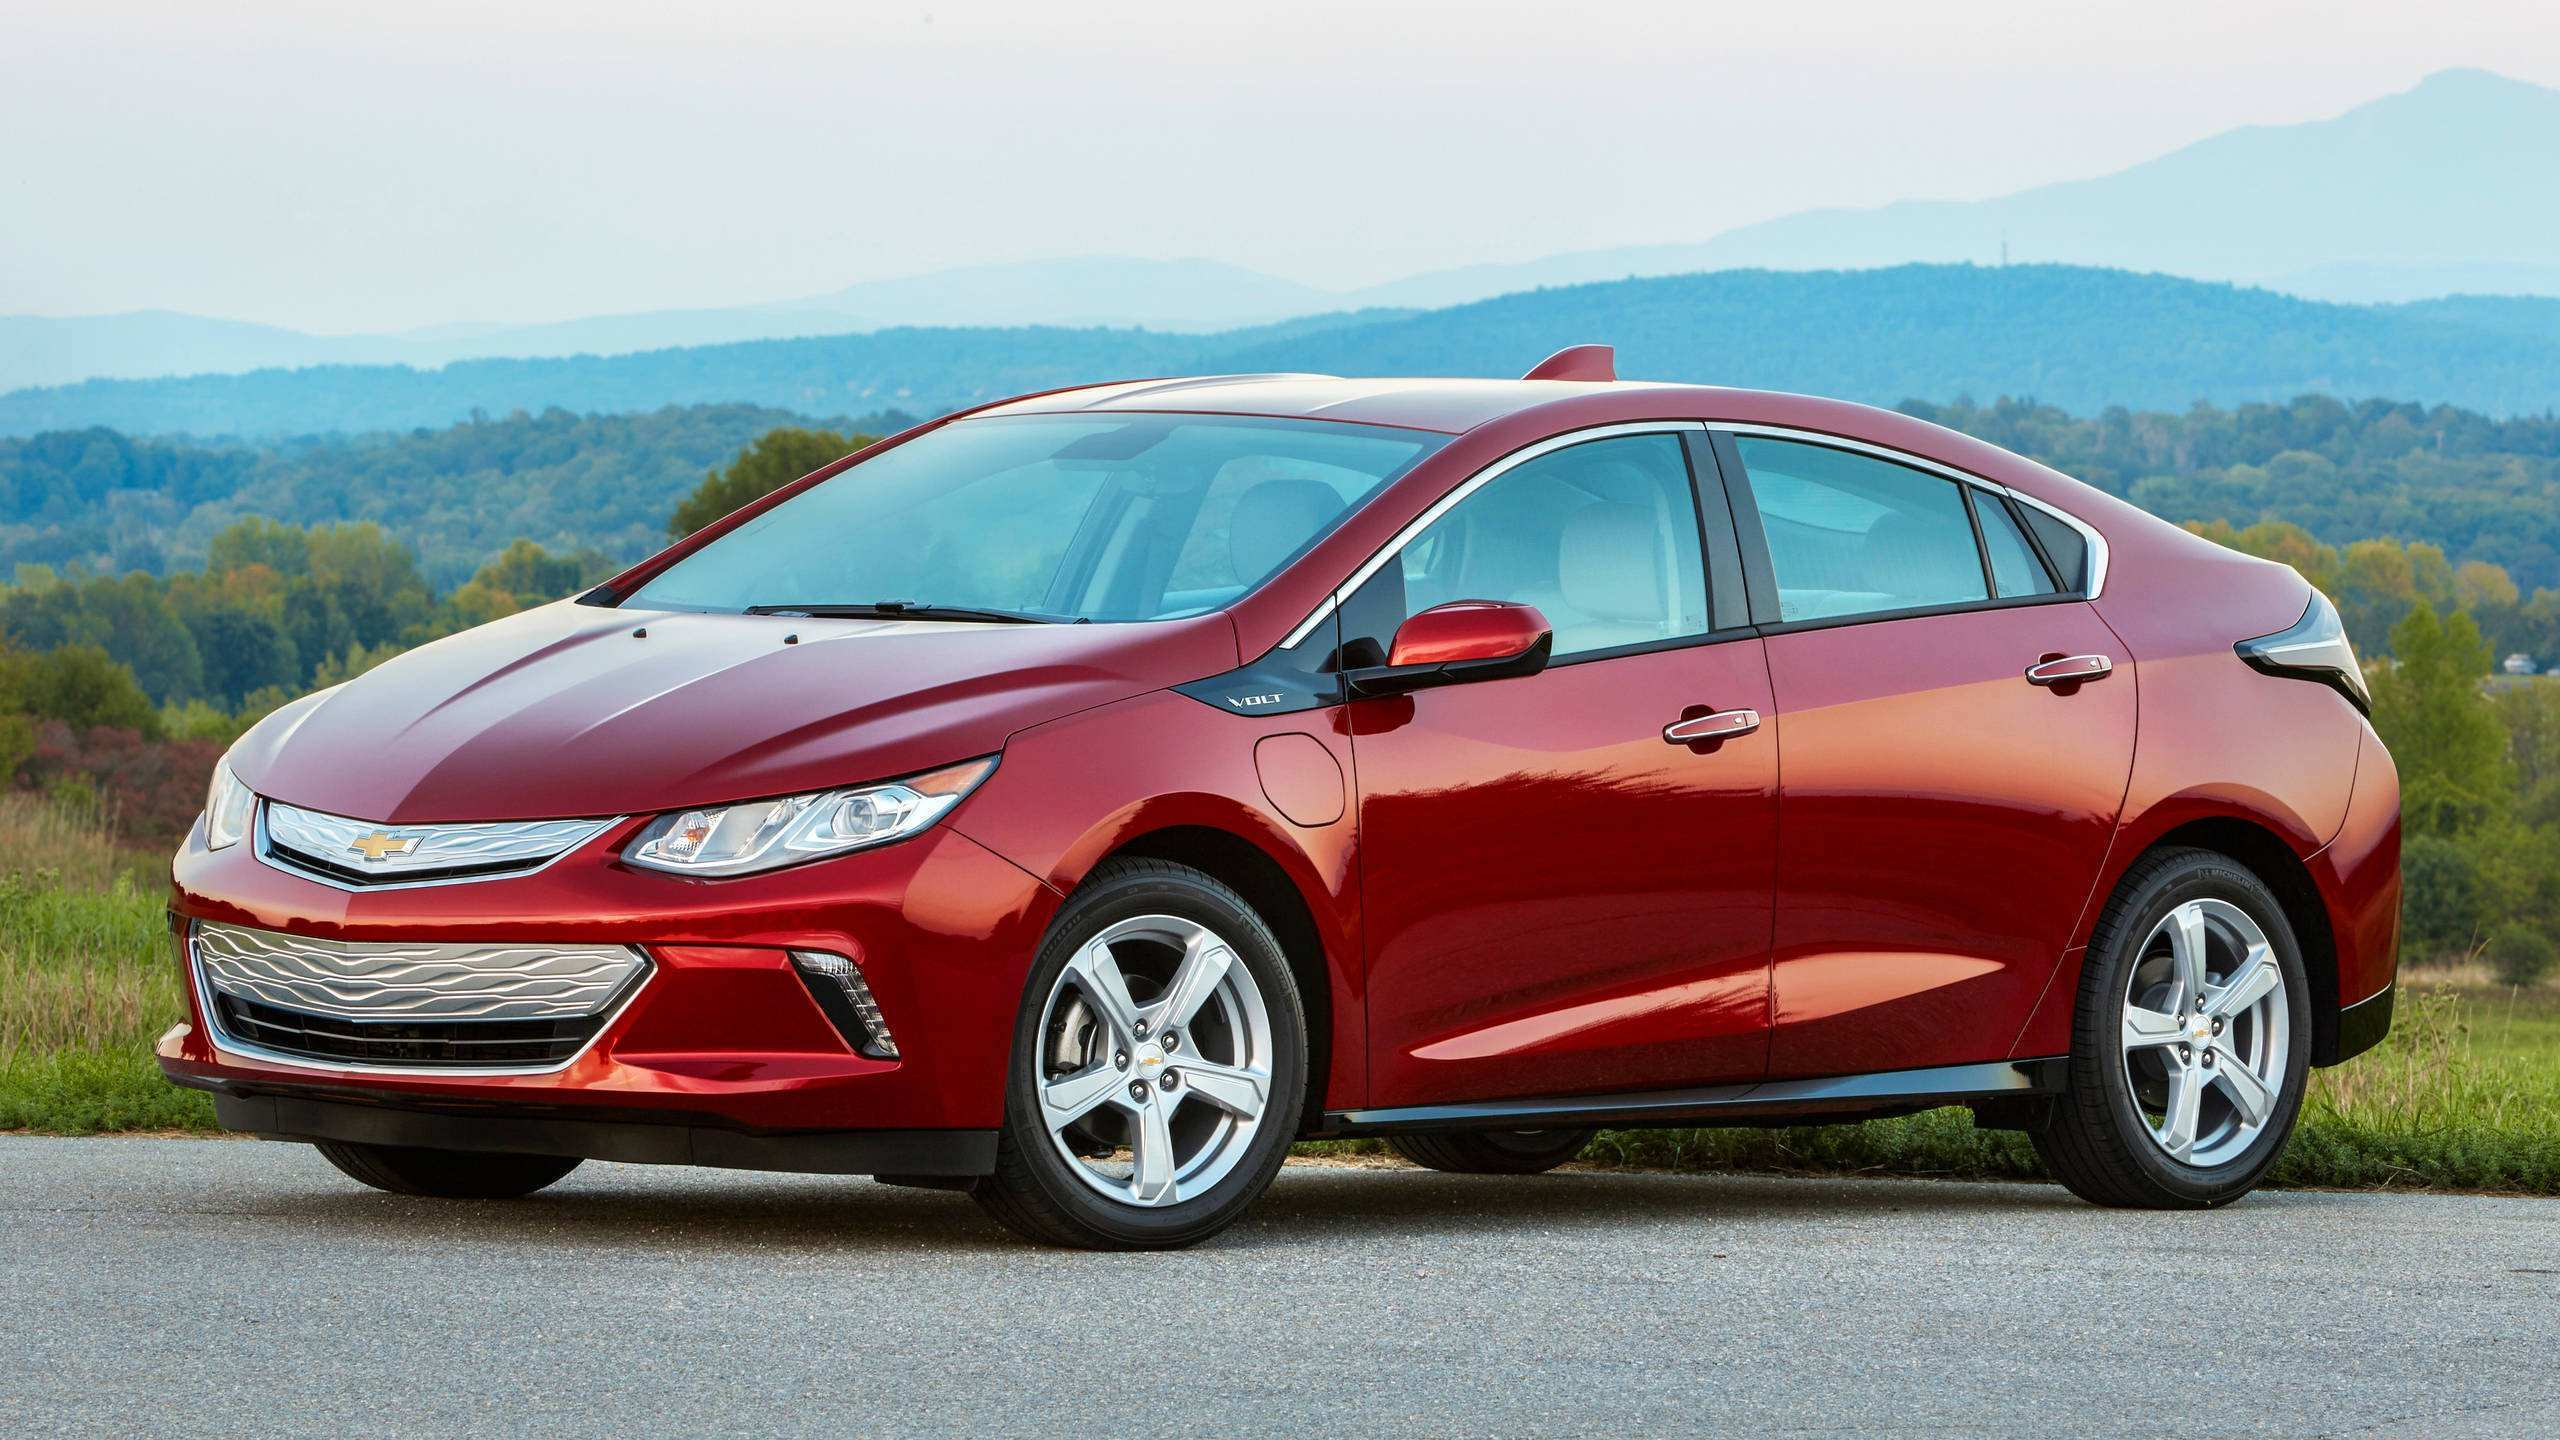 93 All New 2020 Chevy Volt Overview